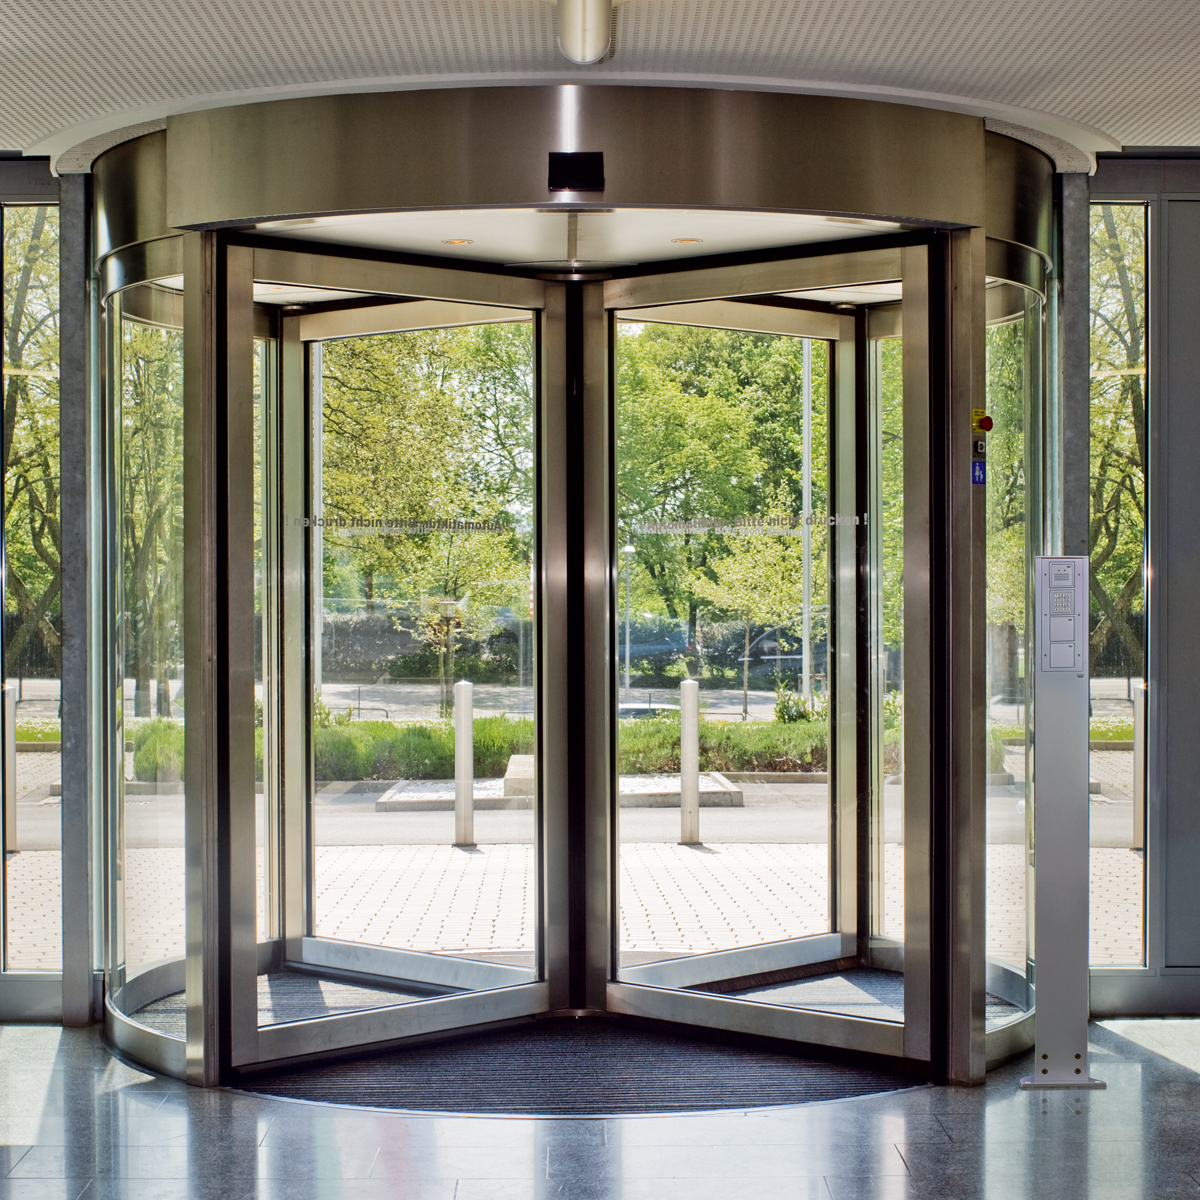 Automatic revolving doors in qatar